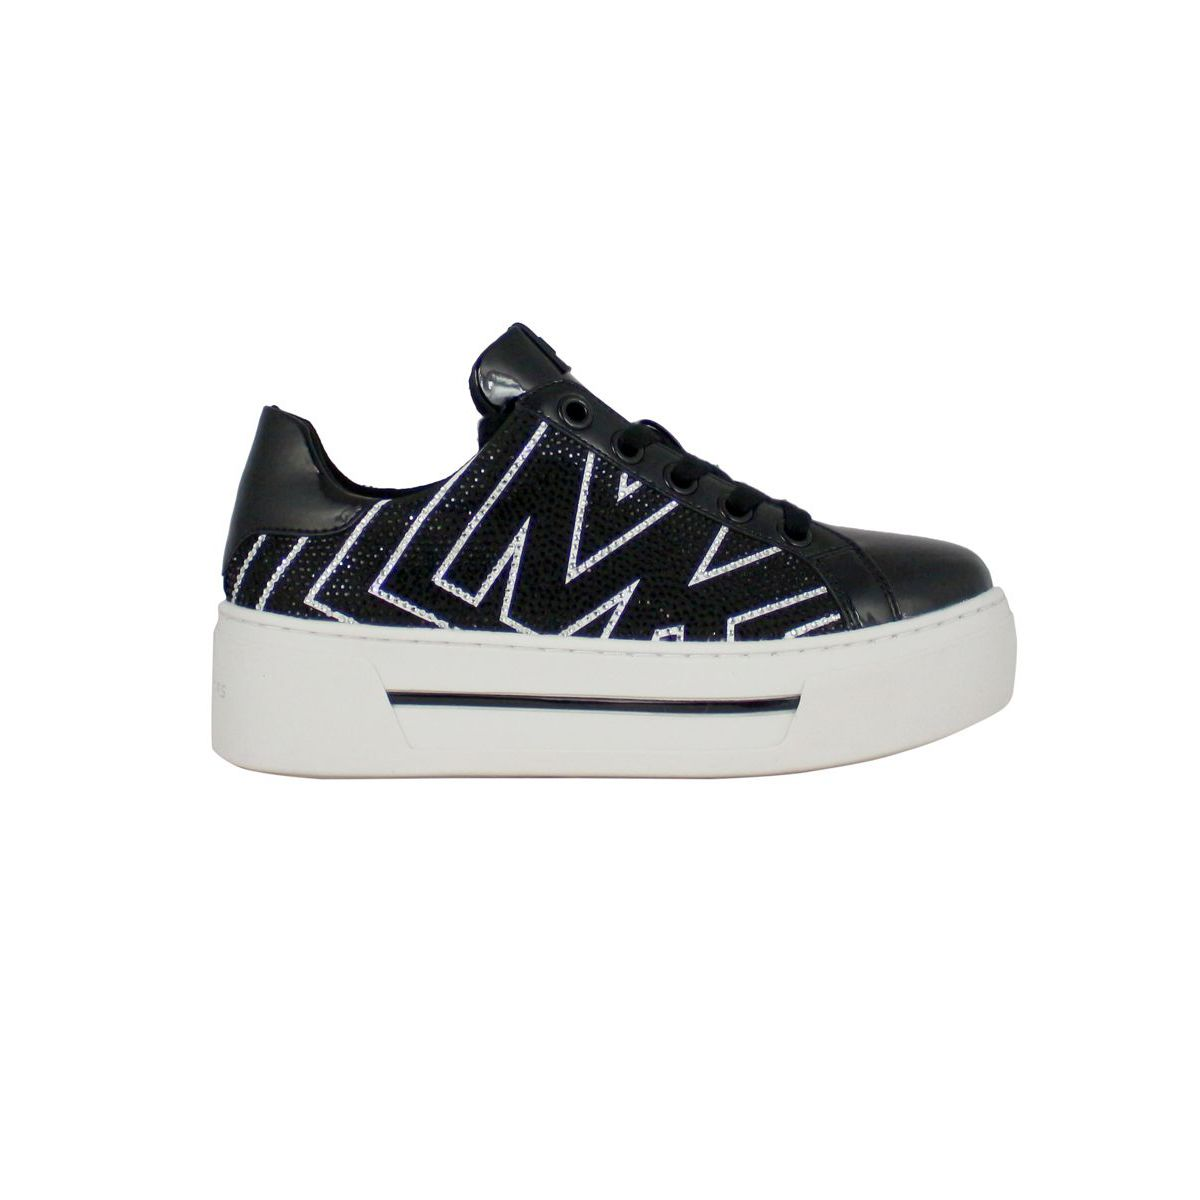 Ashlyn sneakers Black Michael Kors